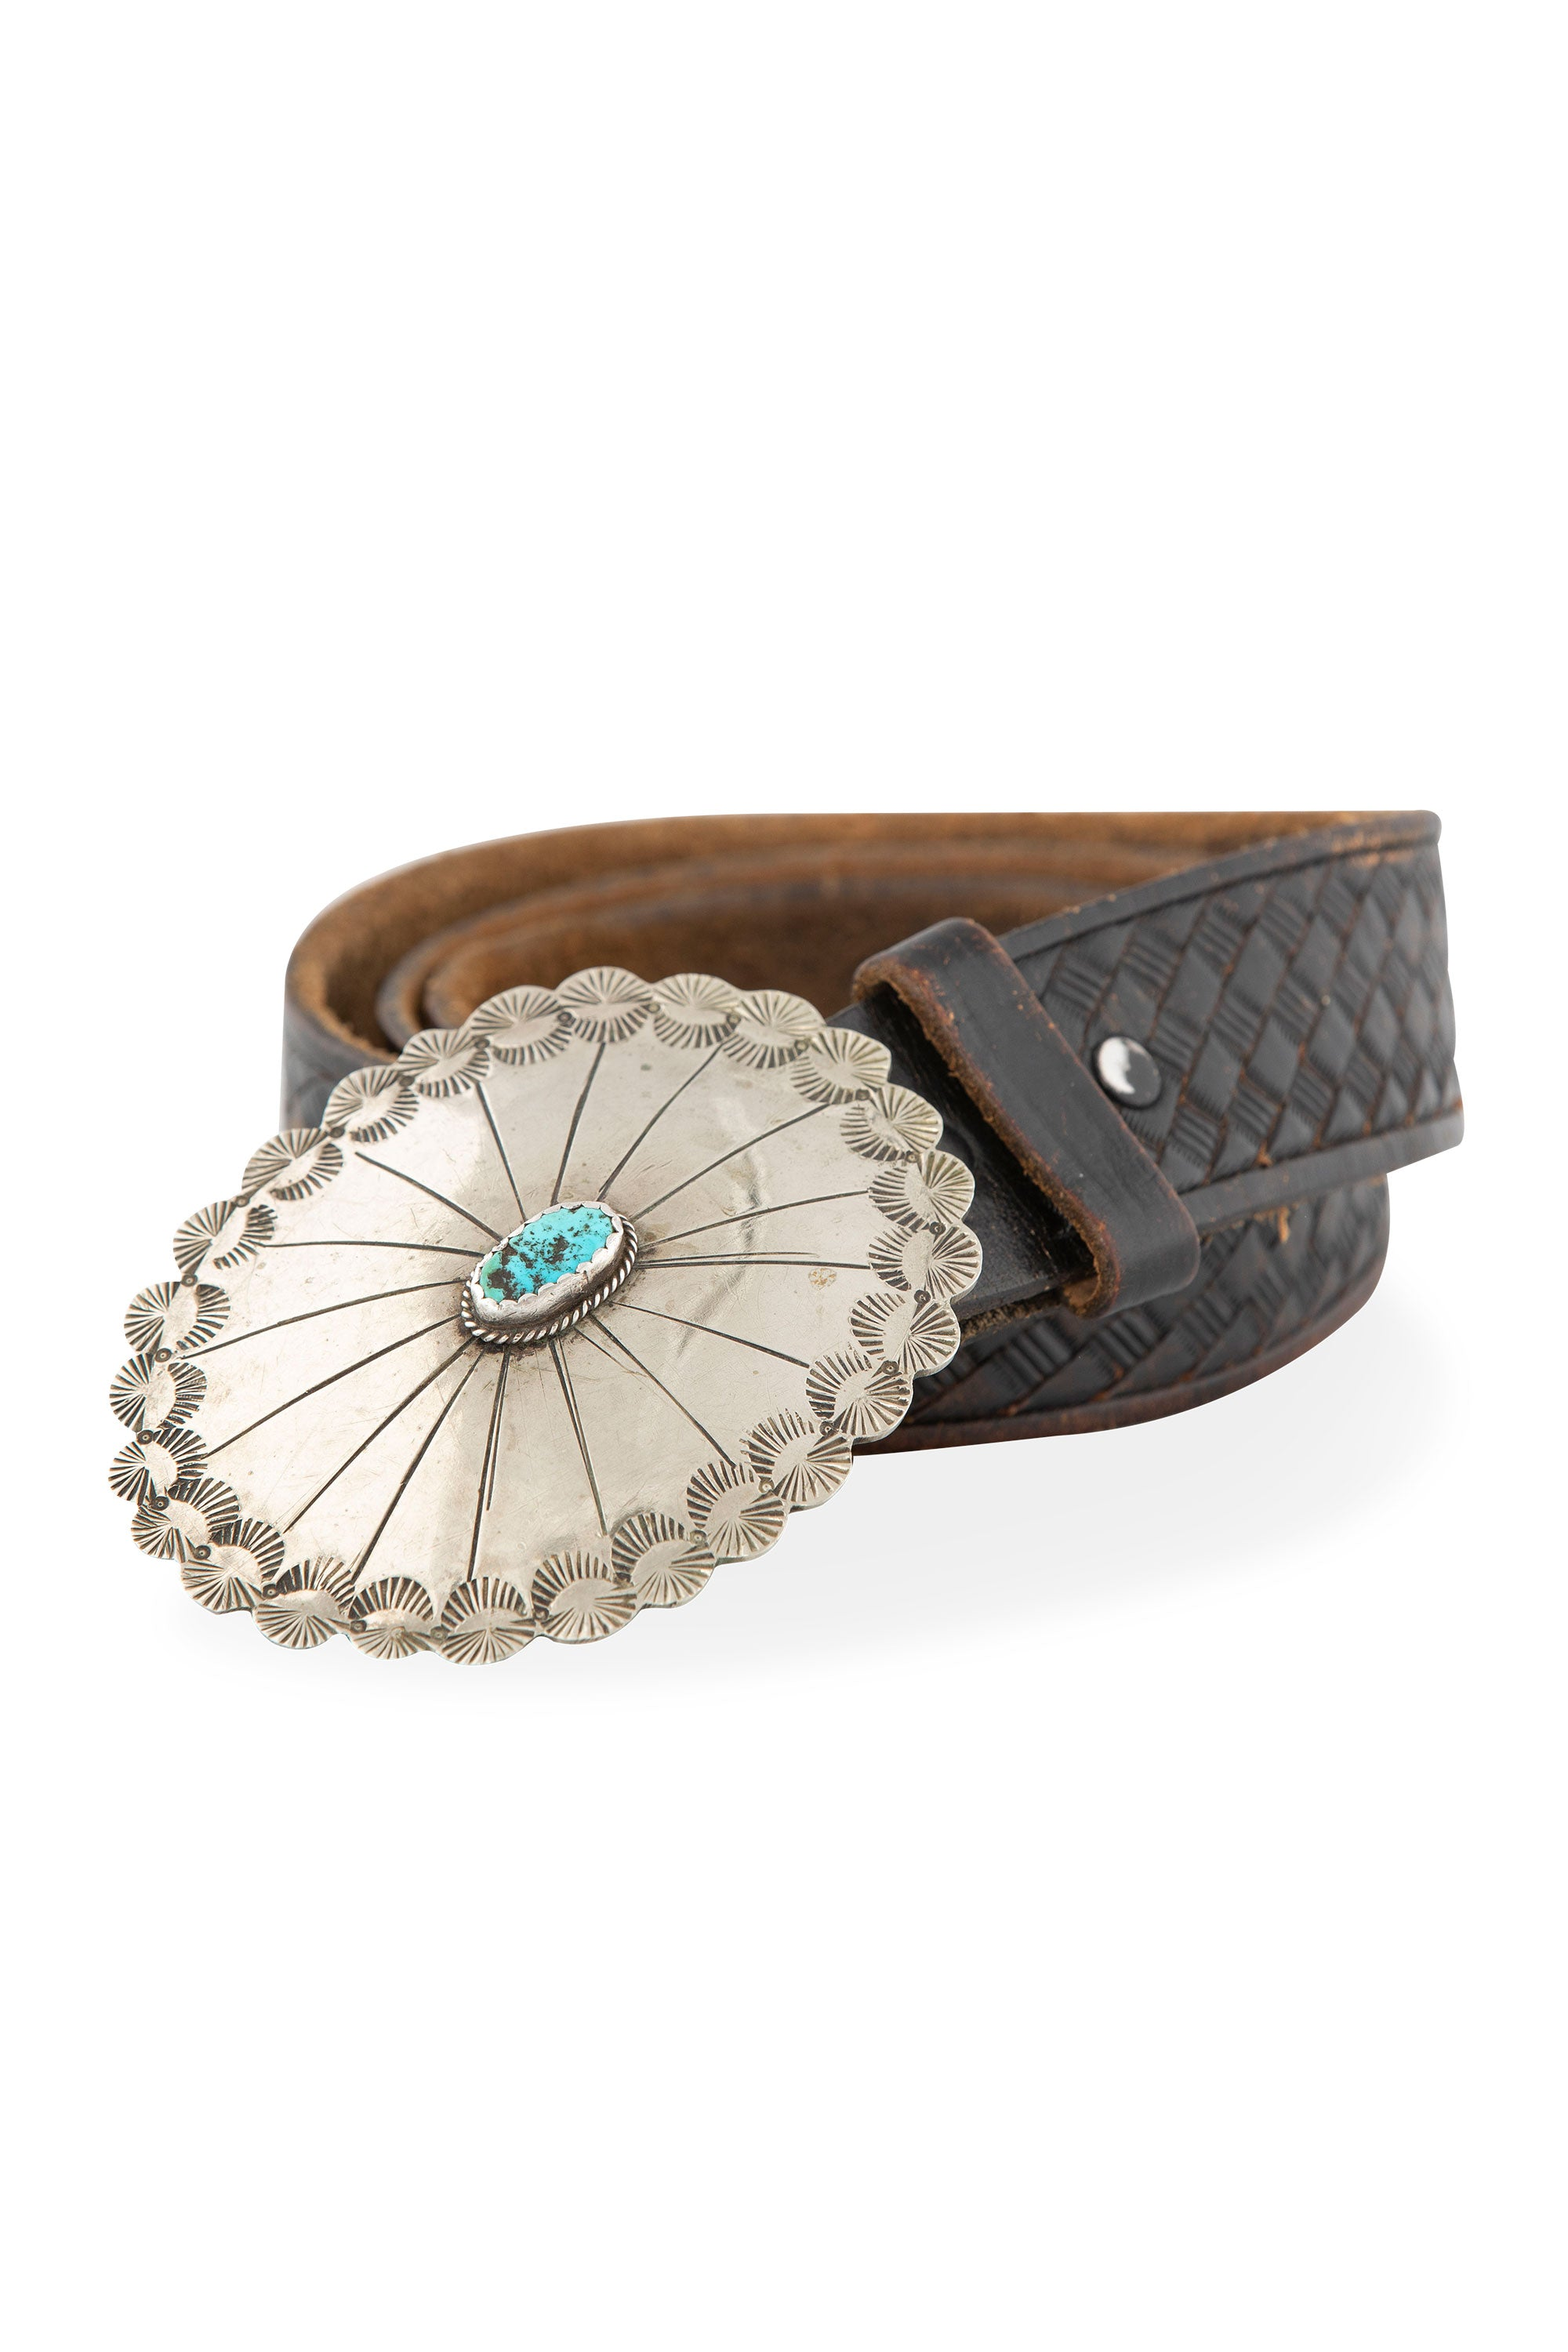 Belt Concho Buckle Turquoise Tooled Leather Strap